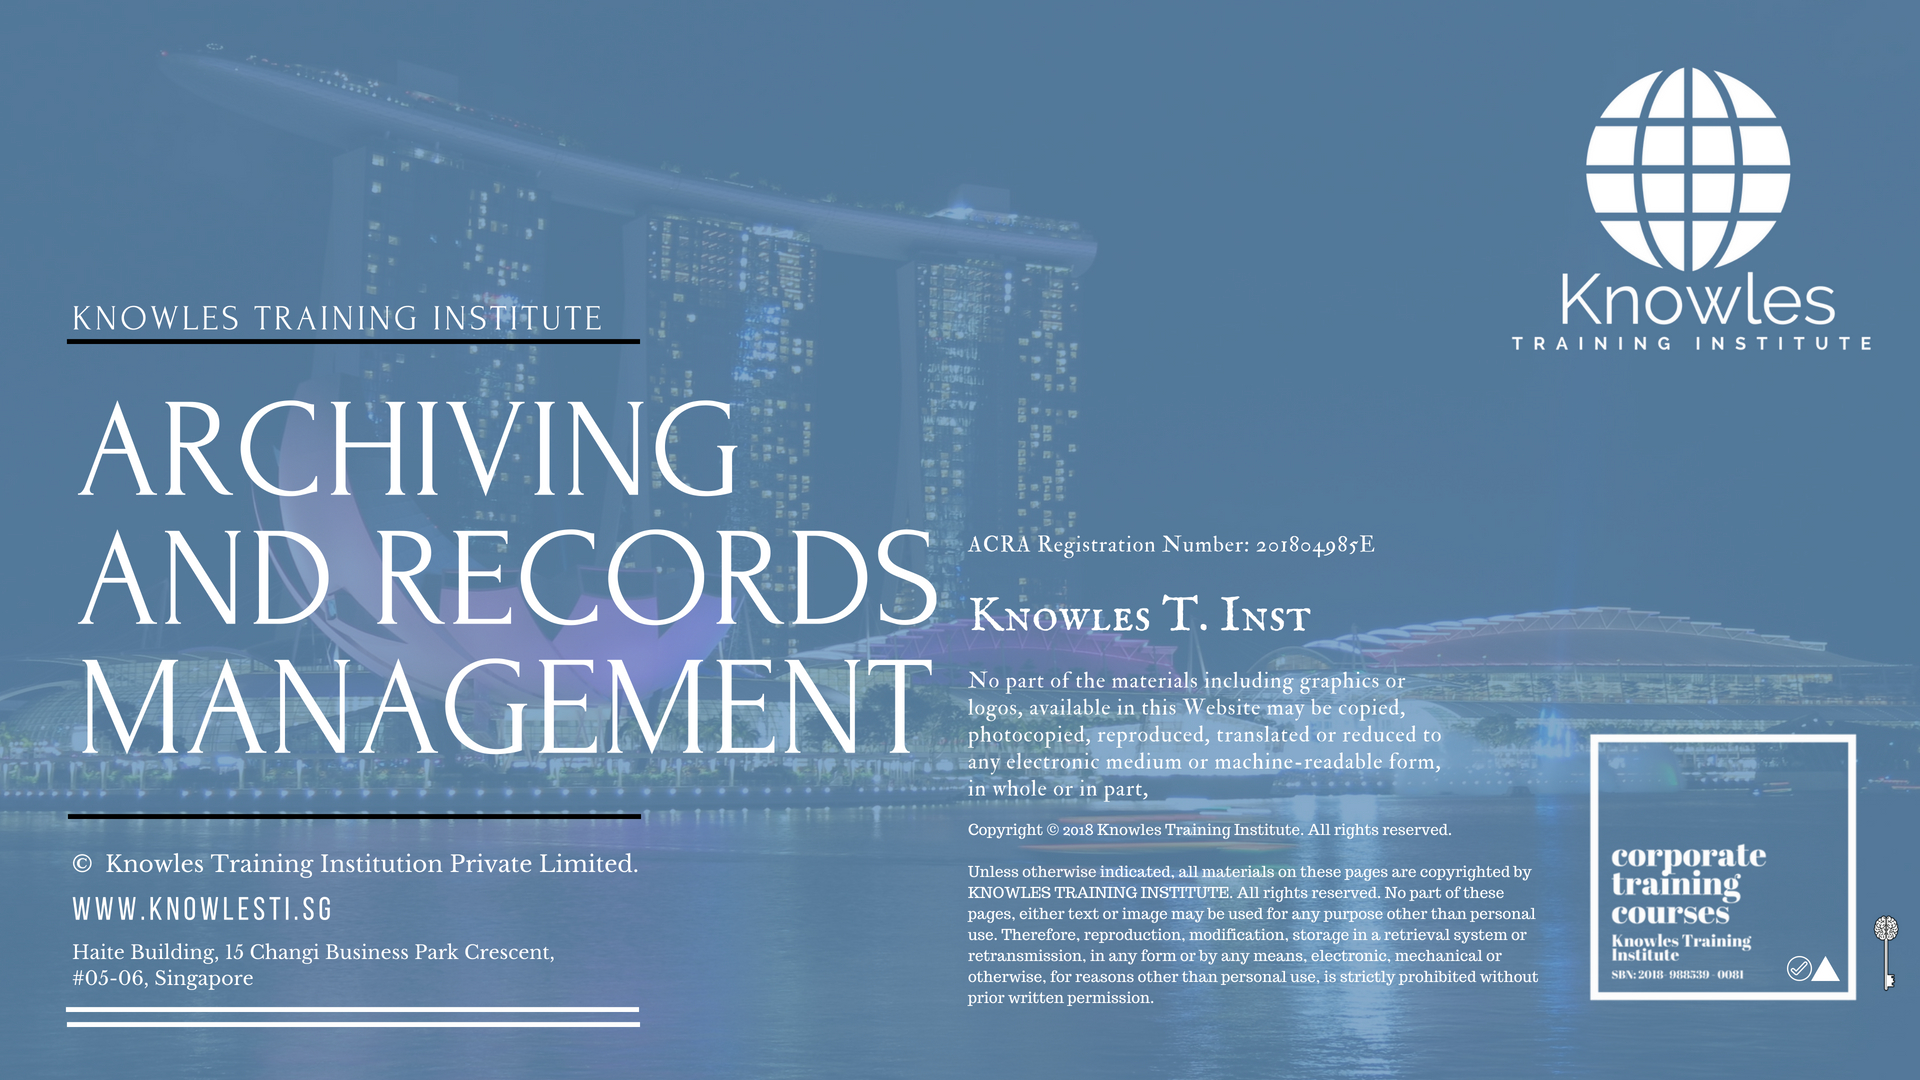 Archiving And Records Management Course